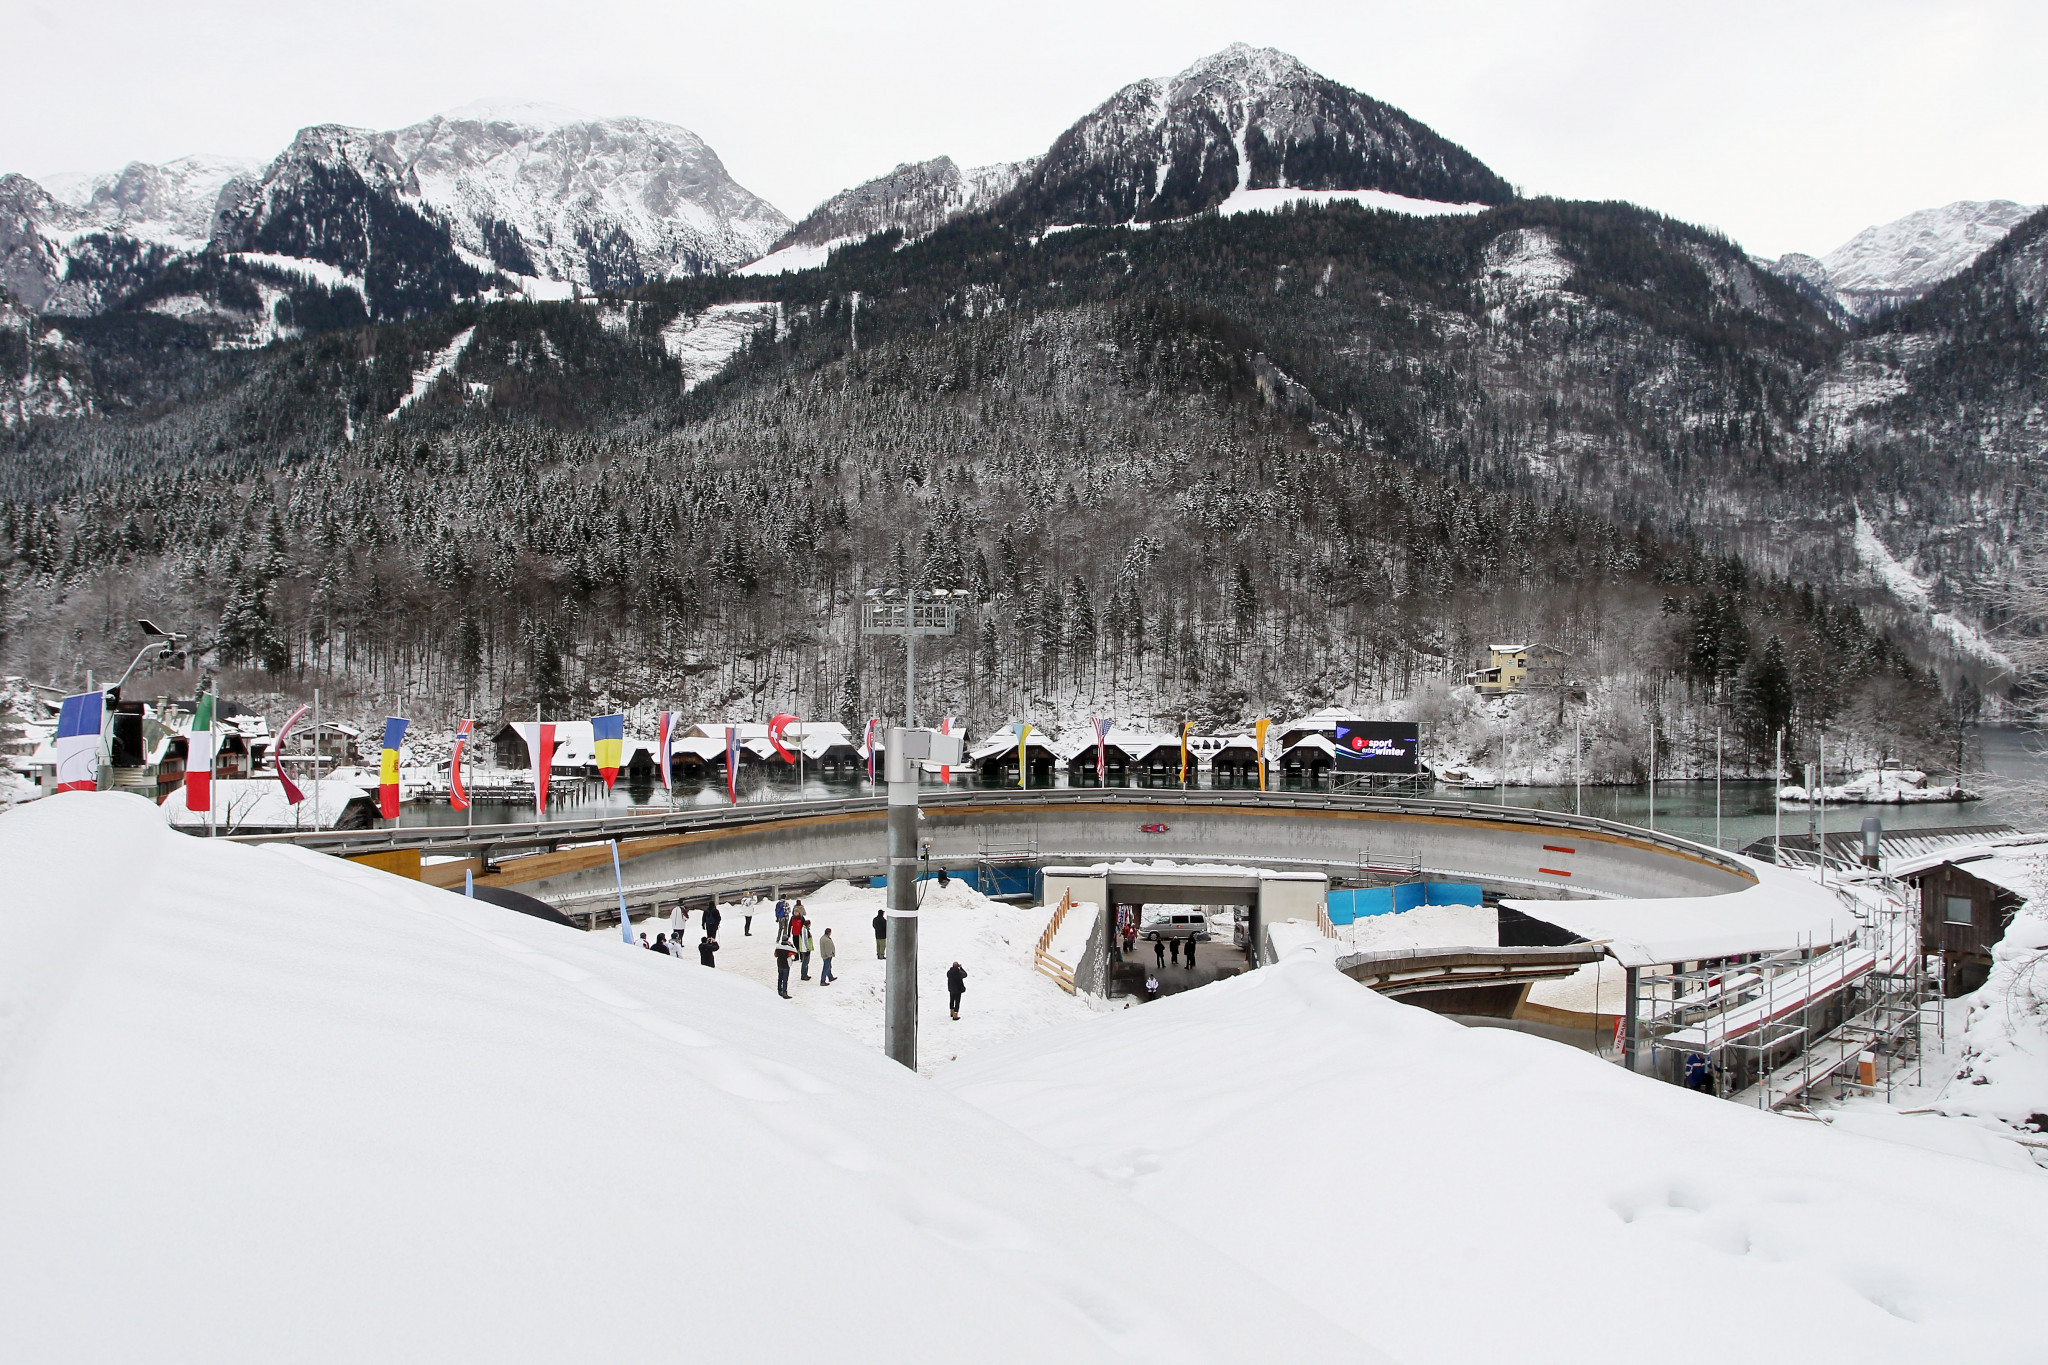 The Königssee luge track will celebrate its 50th anniversary by hosting a Luge World Cup event ©Getty Images